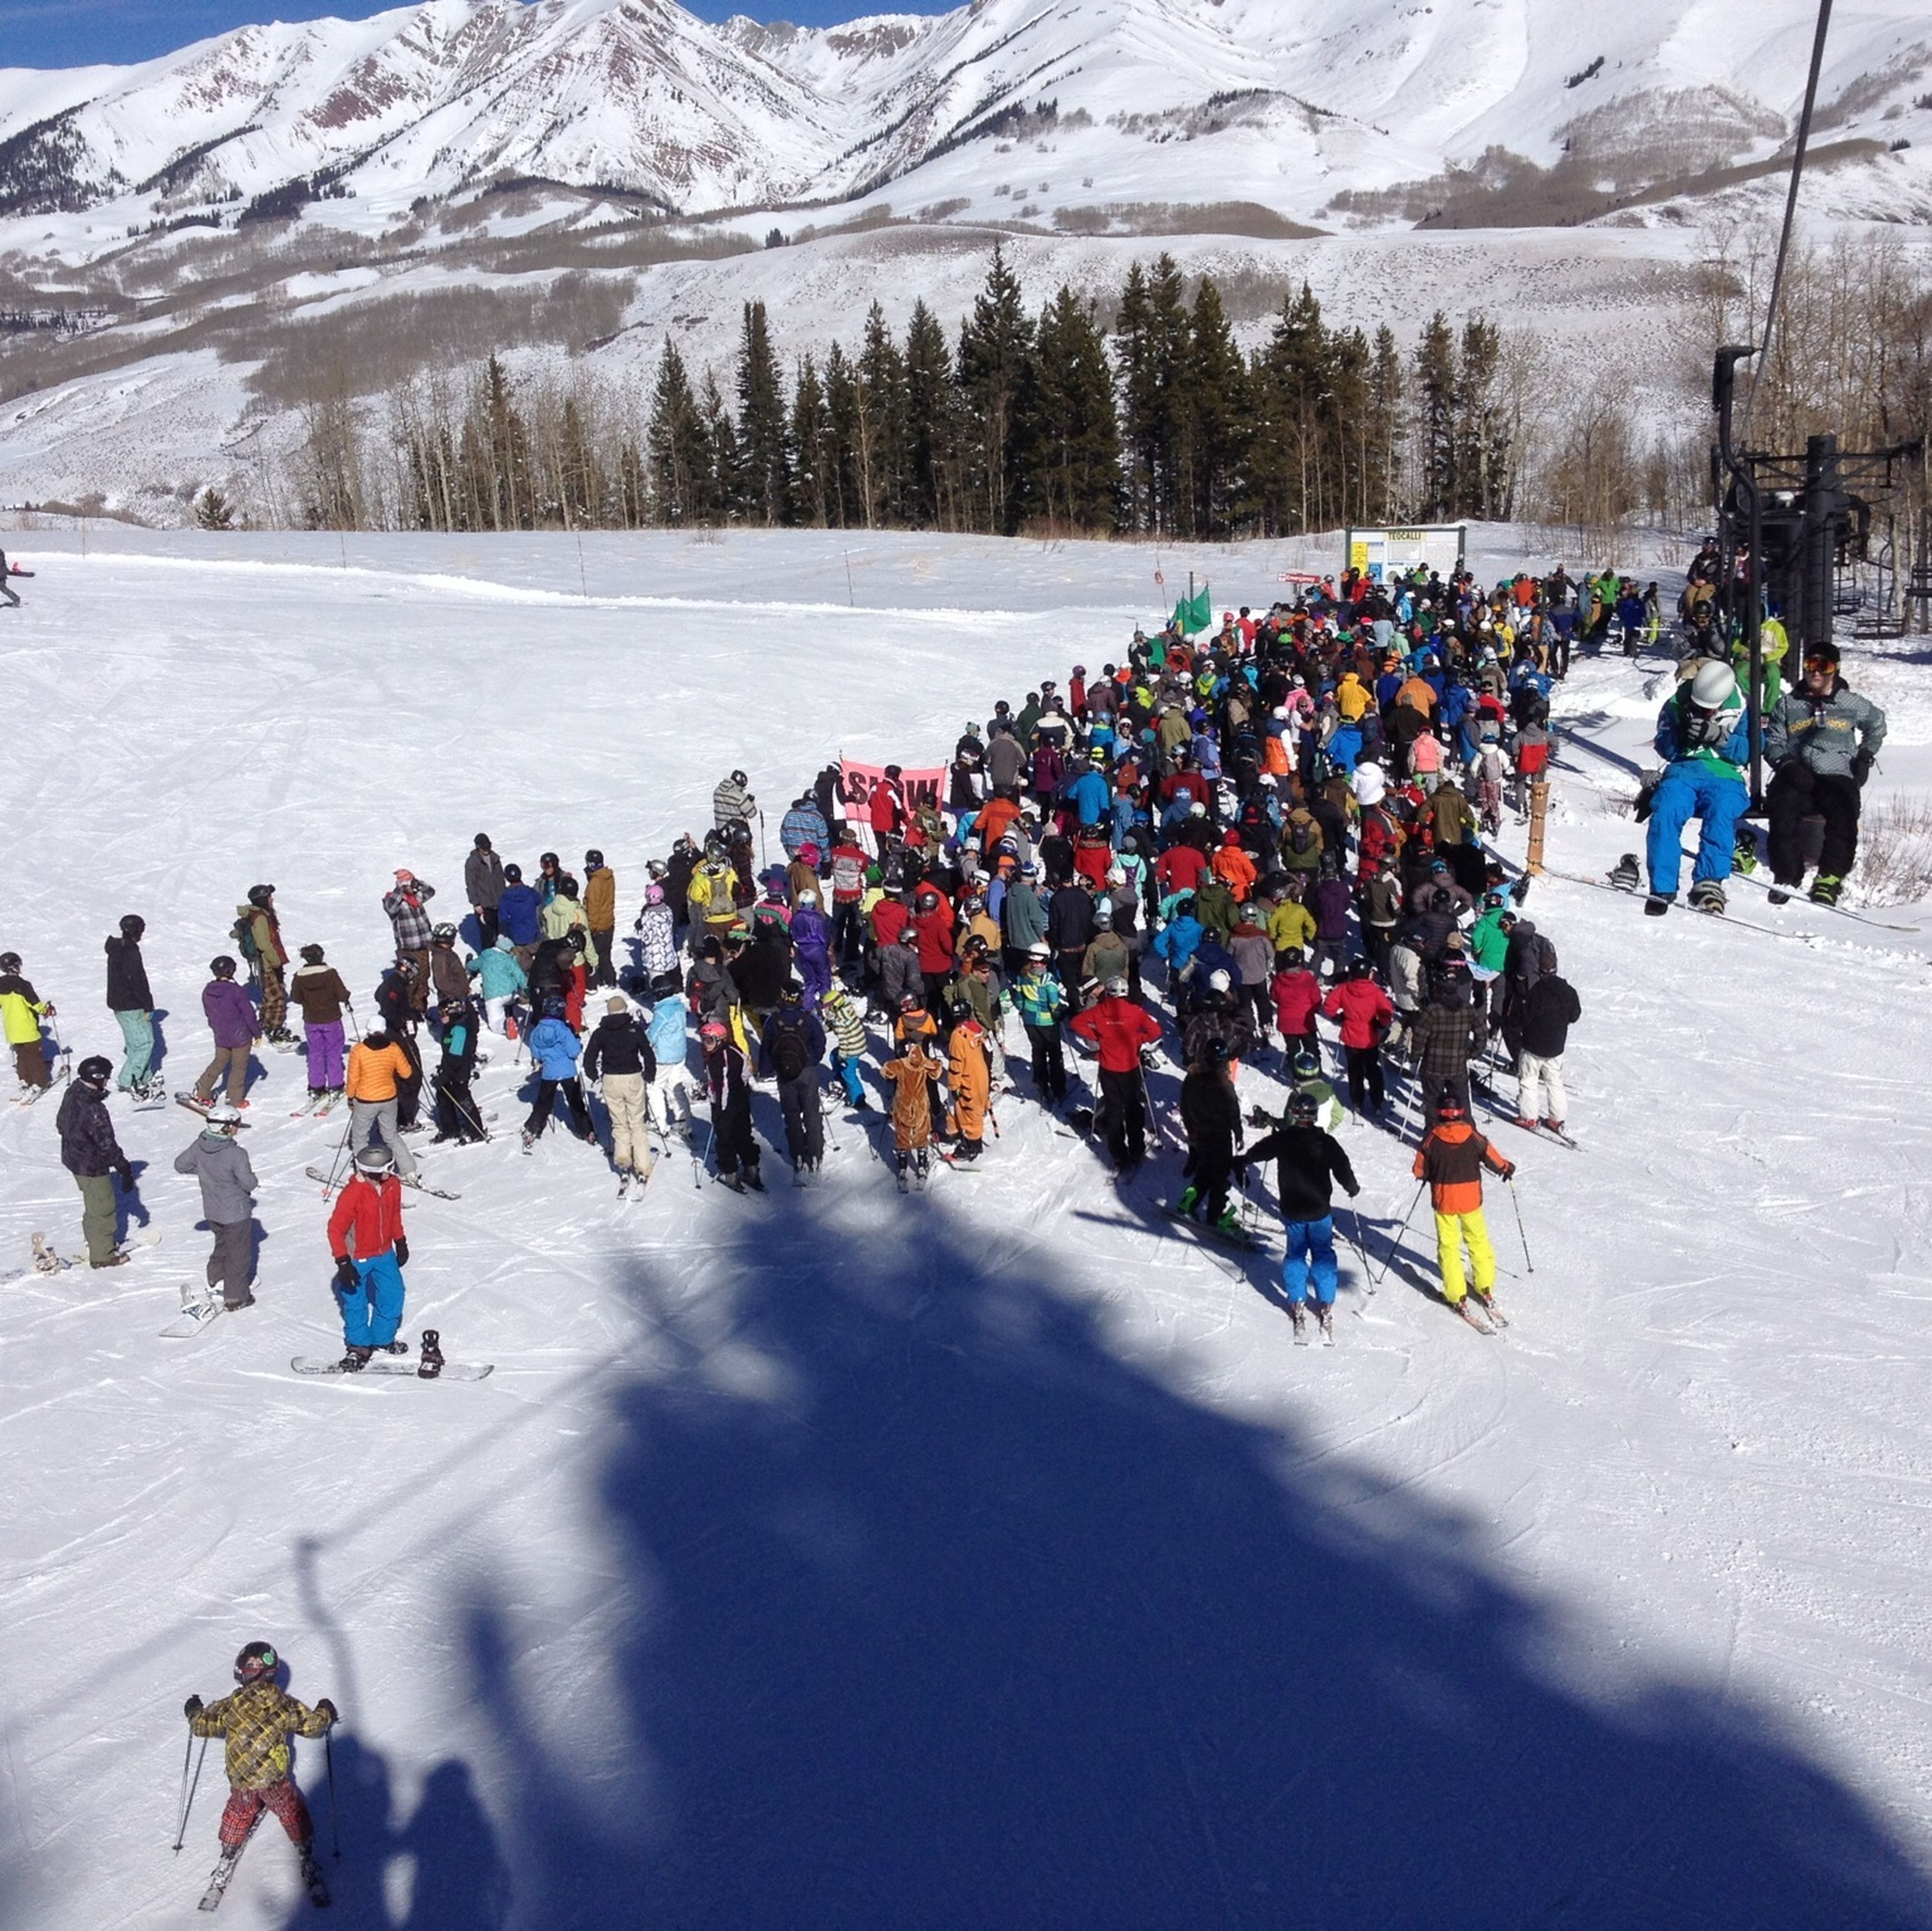 Bigger crowd and a bit smaller snow than Monarch for opening day at Crested Butte.